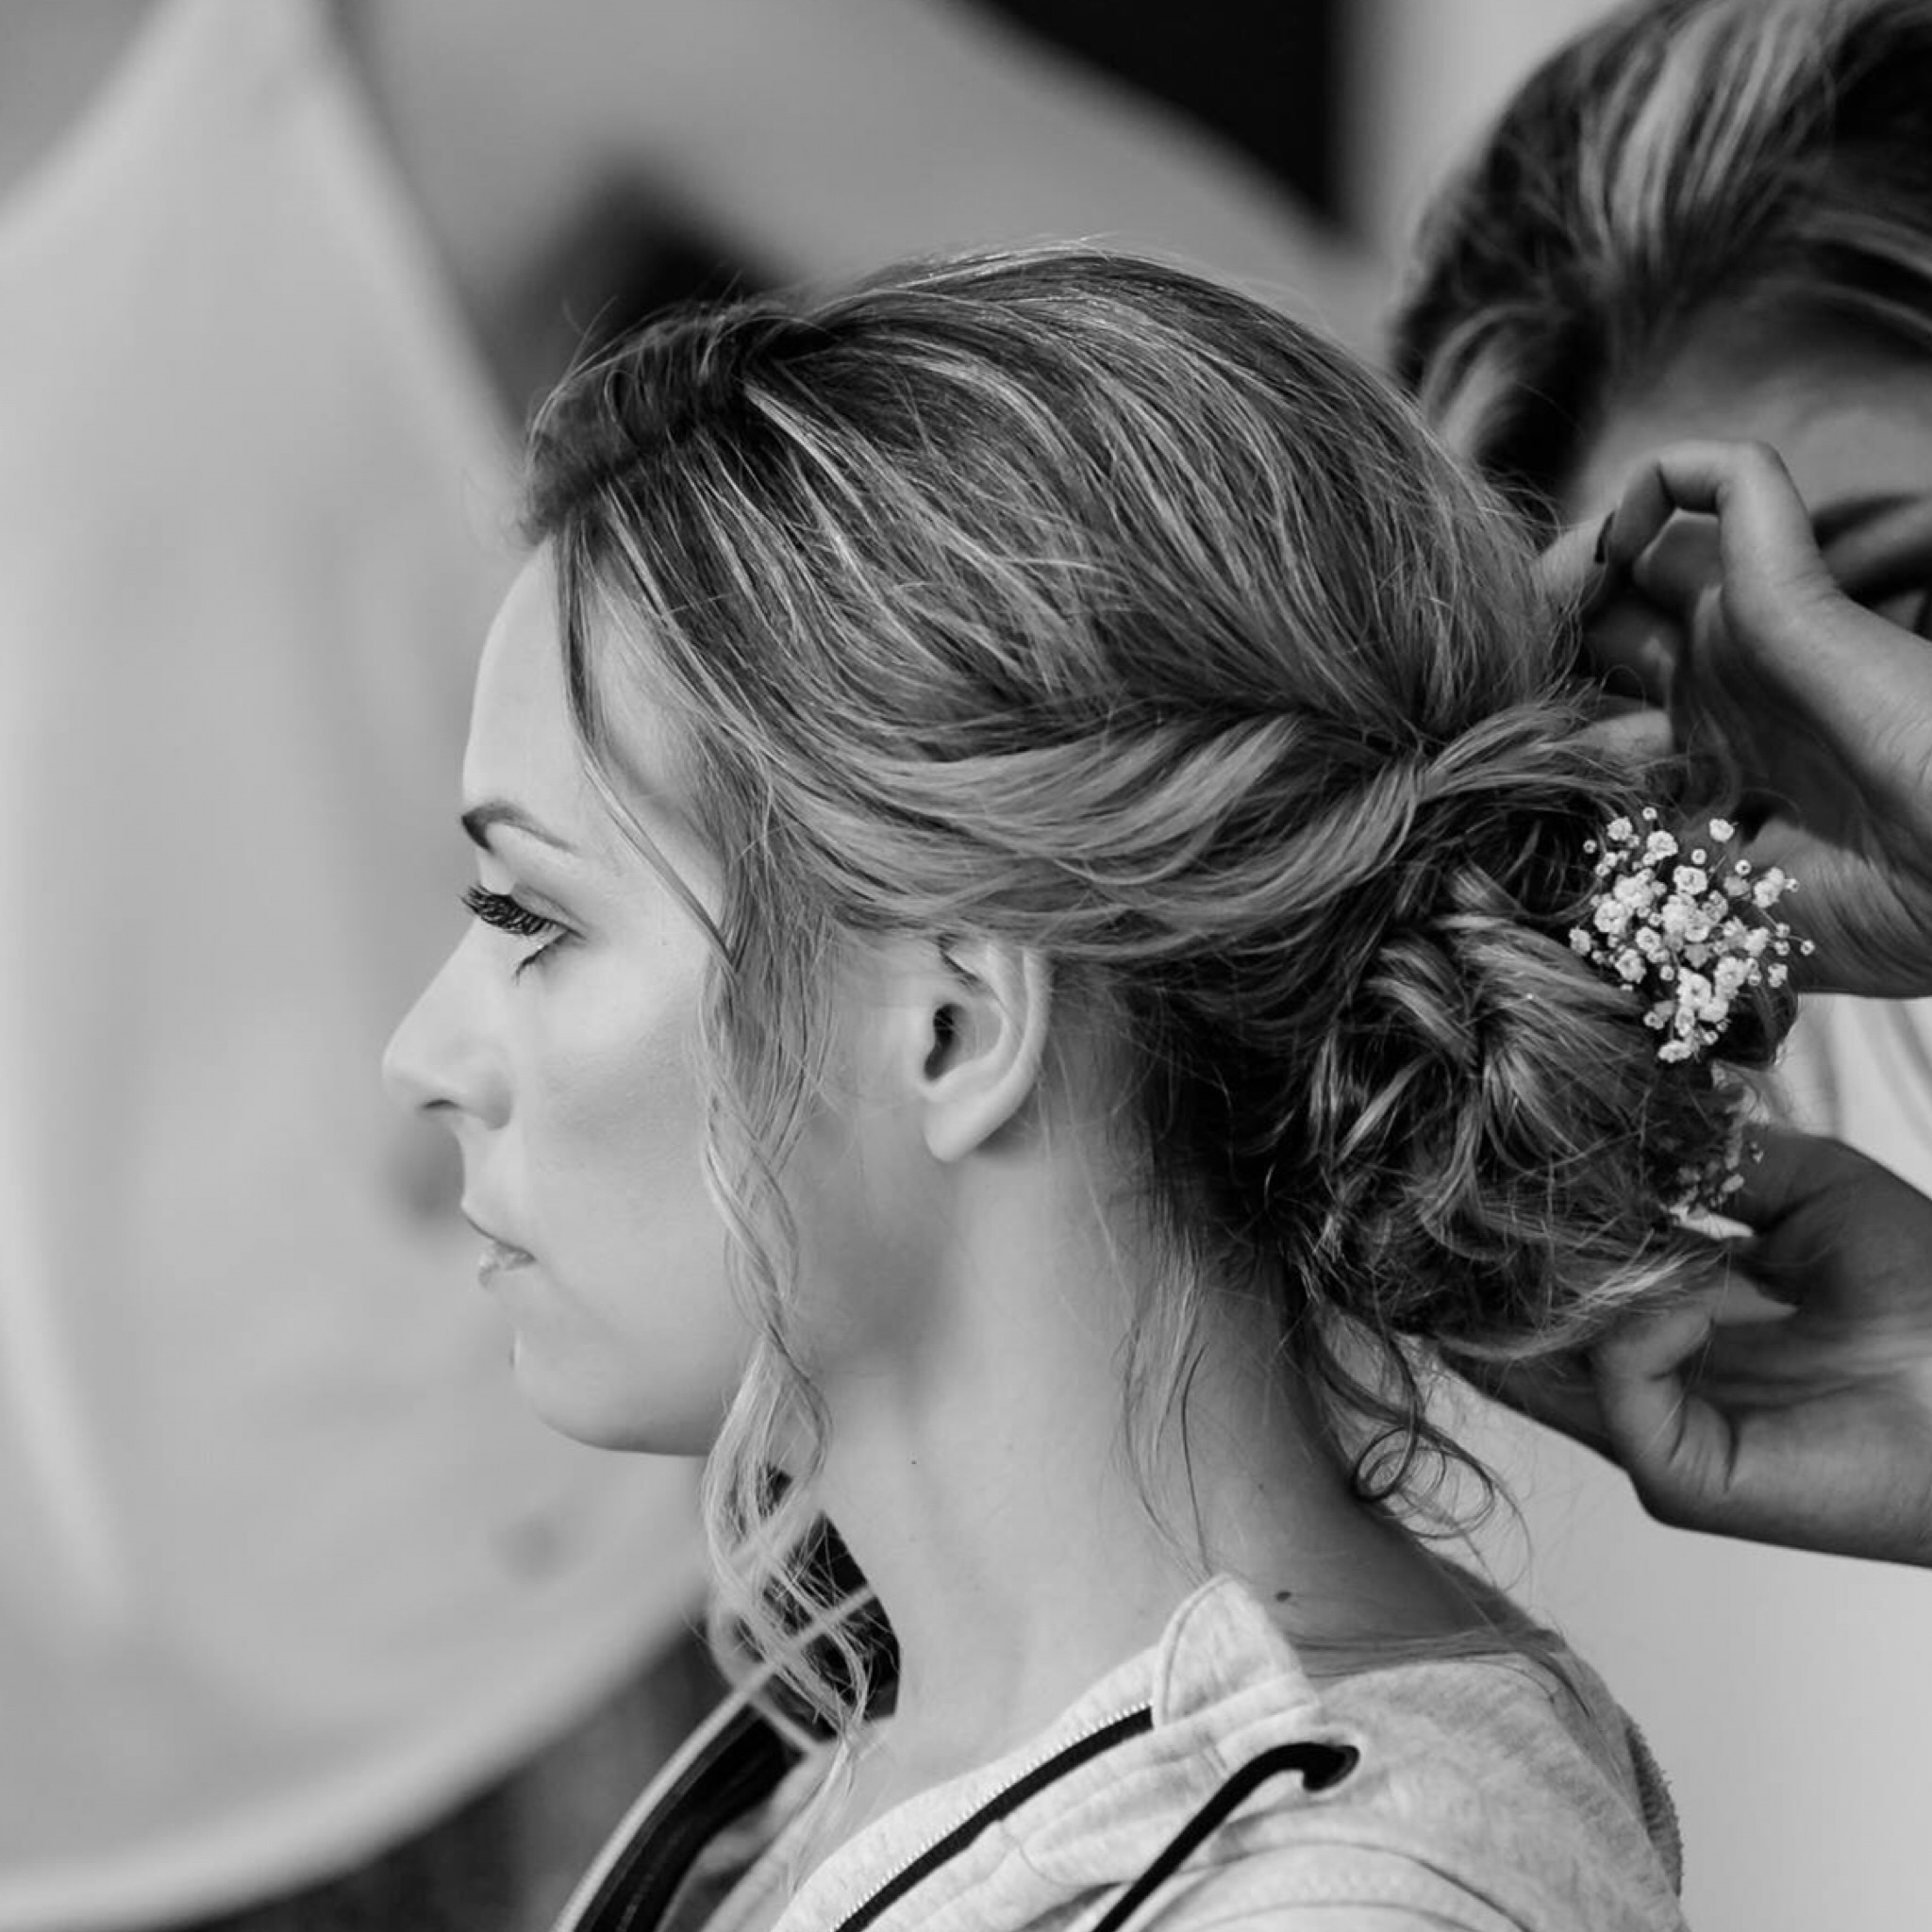 Beauty room-hair and makeup touch ups